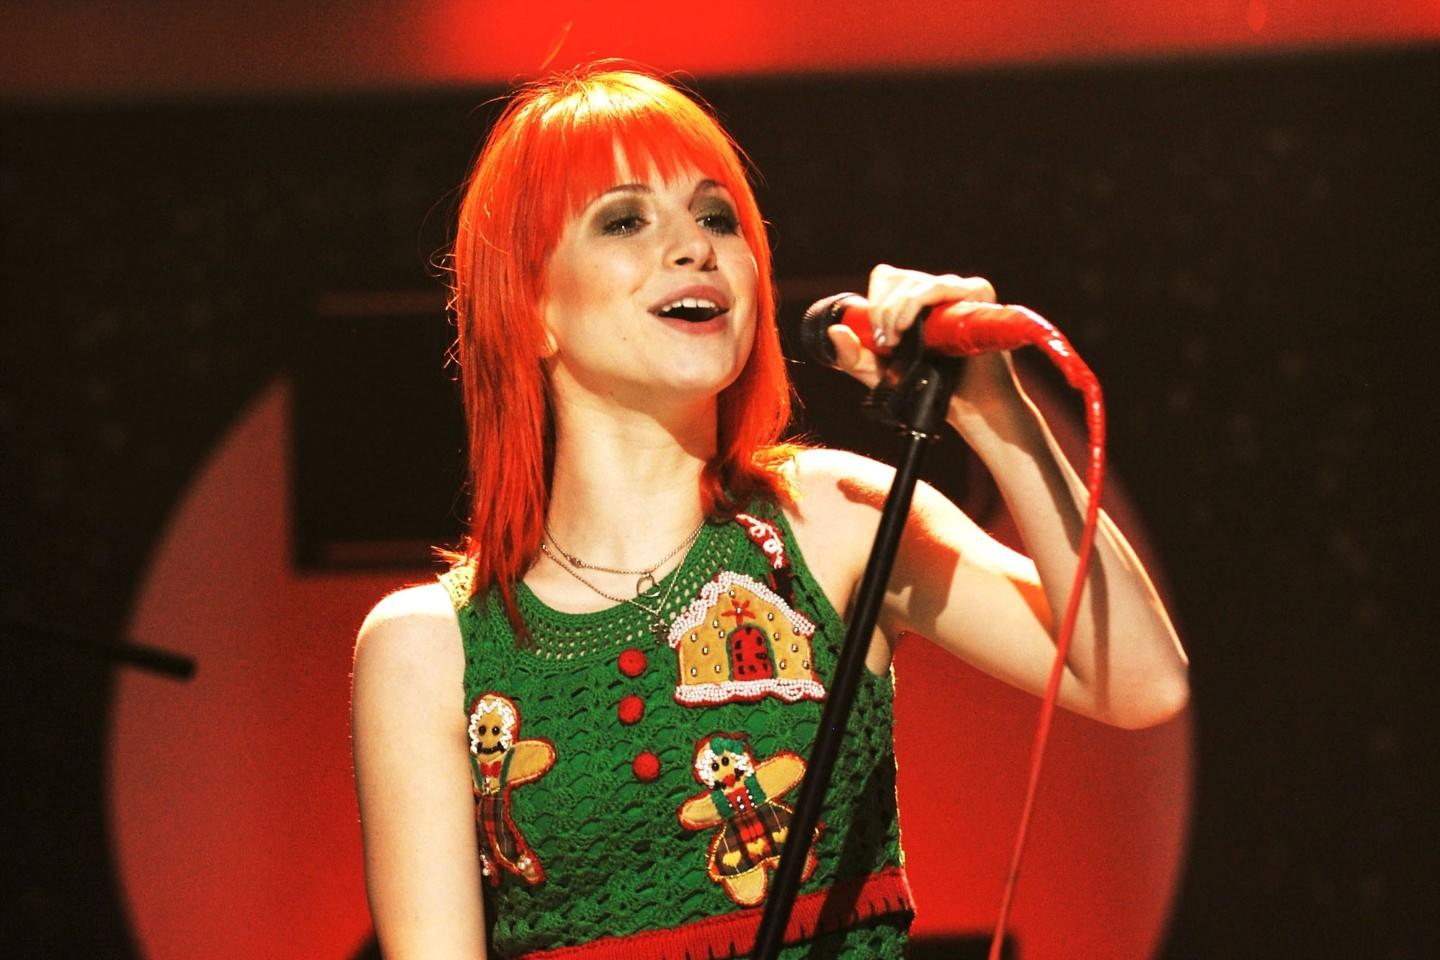 Paramore Tickets   Paramore Tour 2018 and Concert Tickets ... Paramore Tour